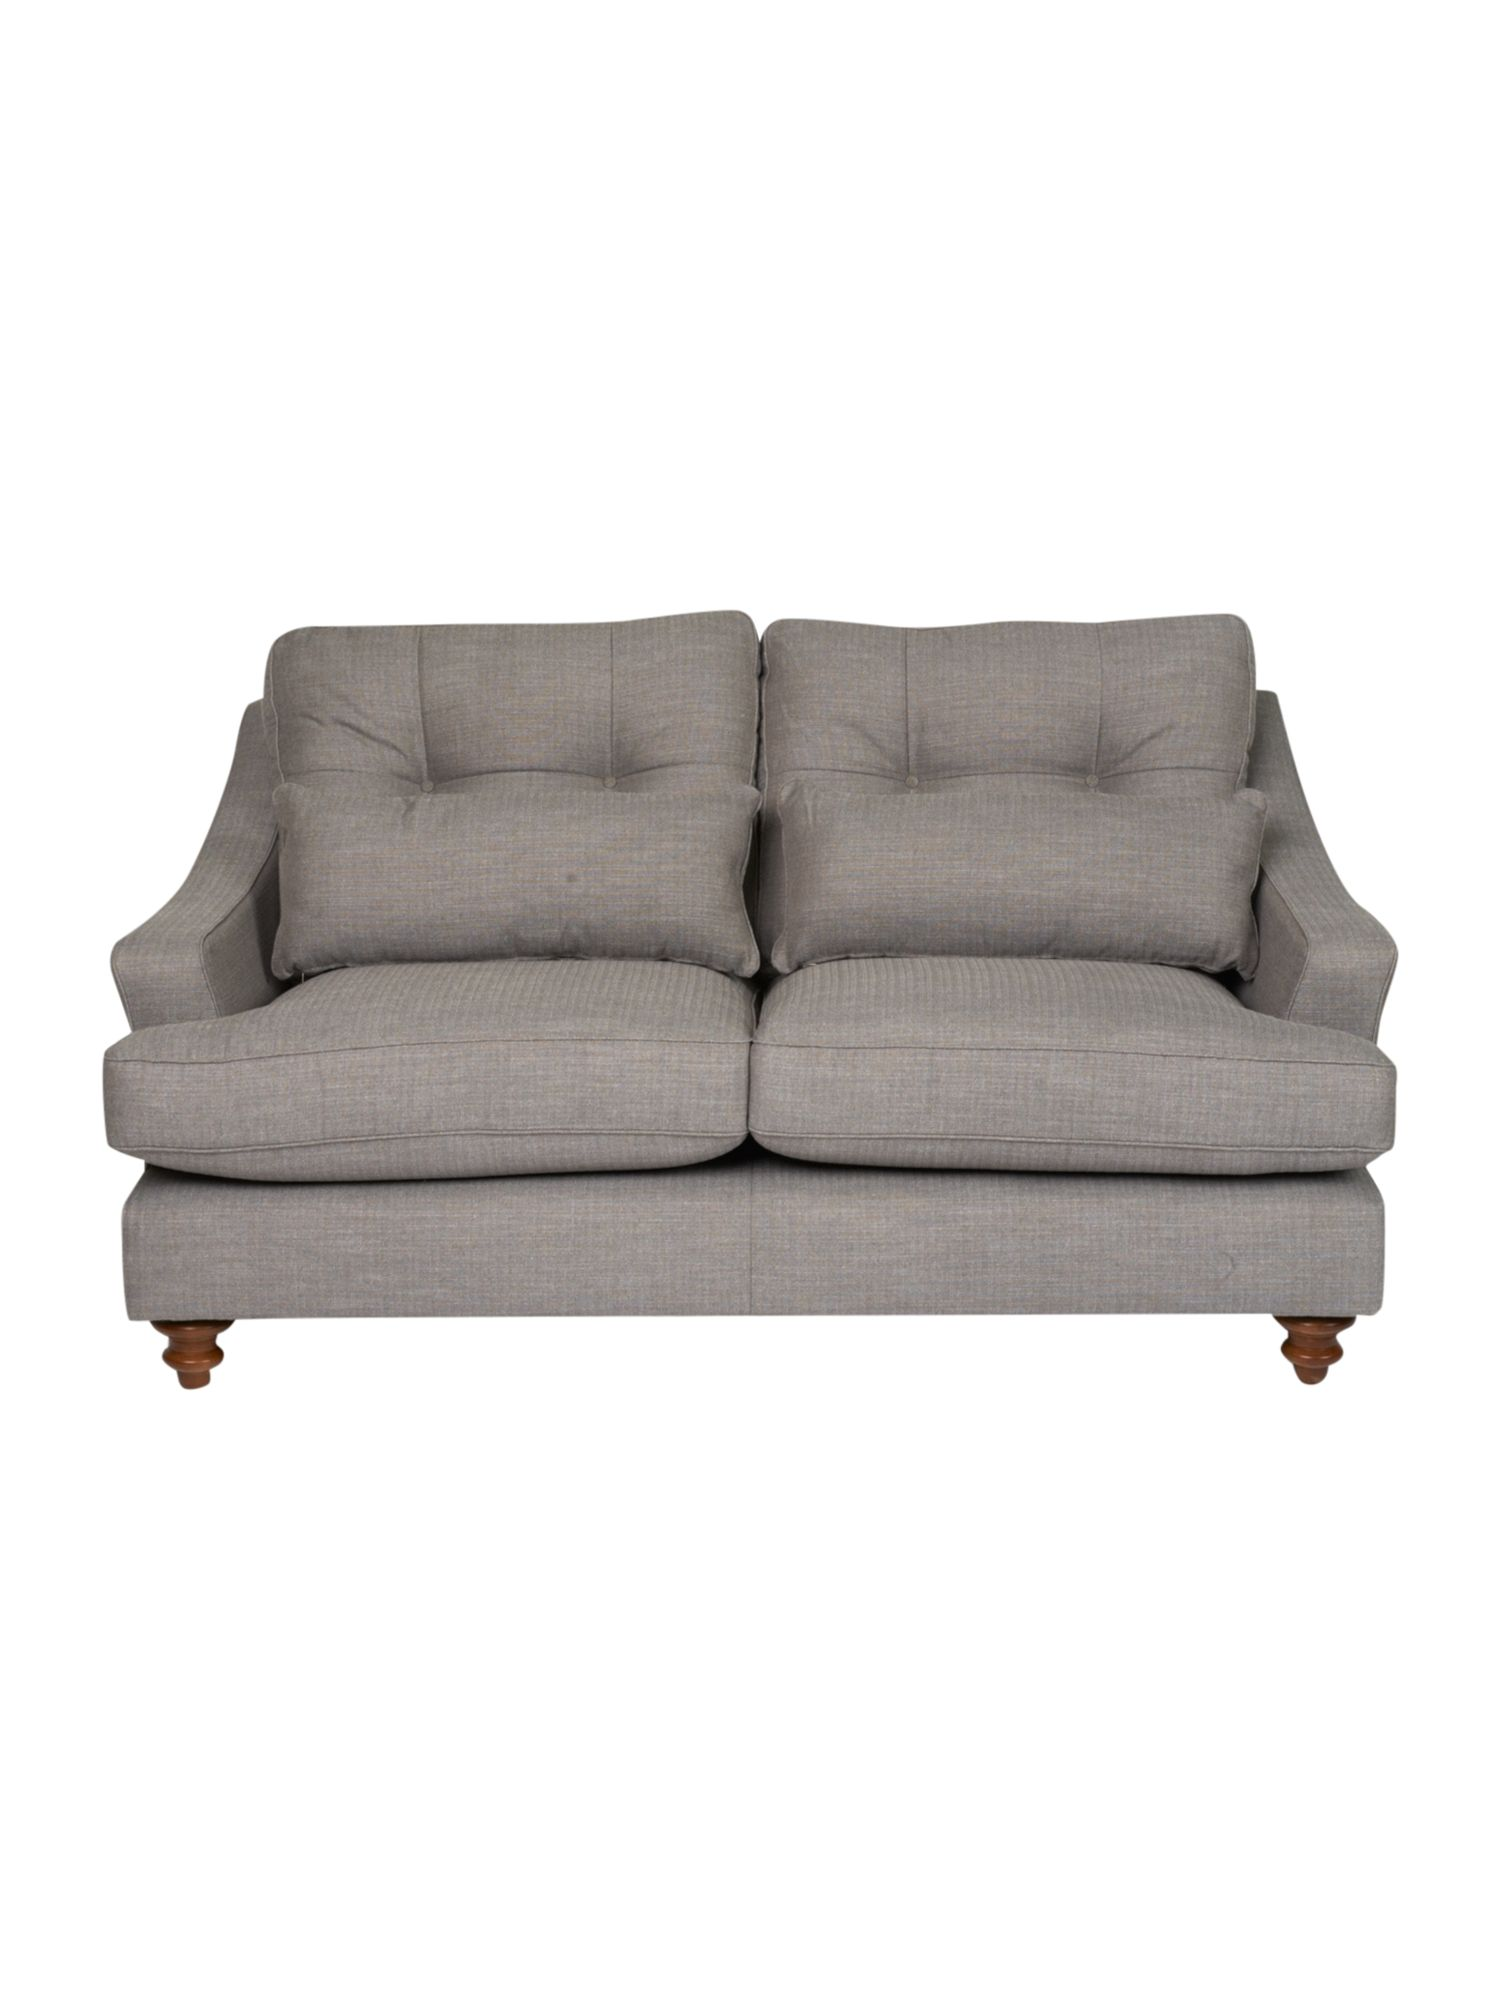 Portland medium 2 seater sofa